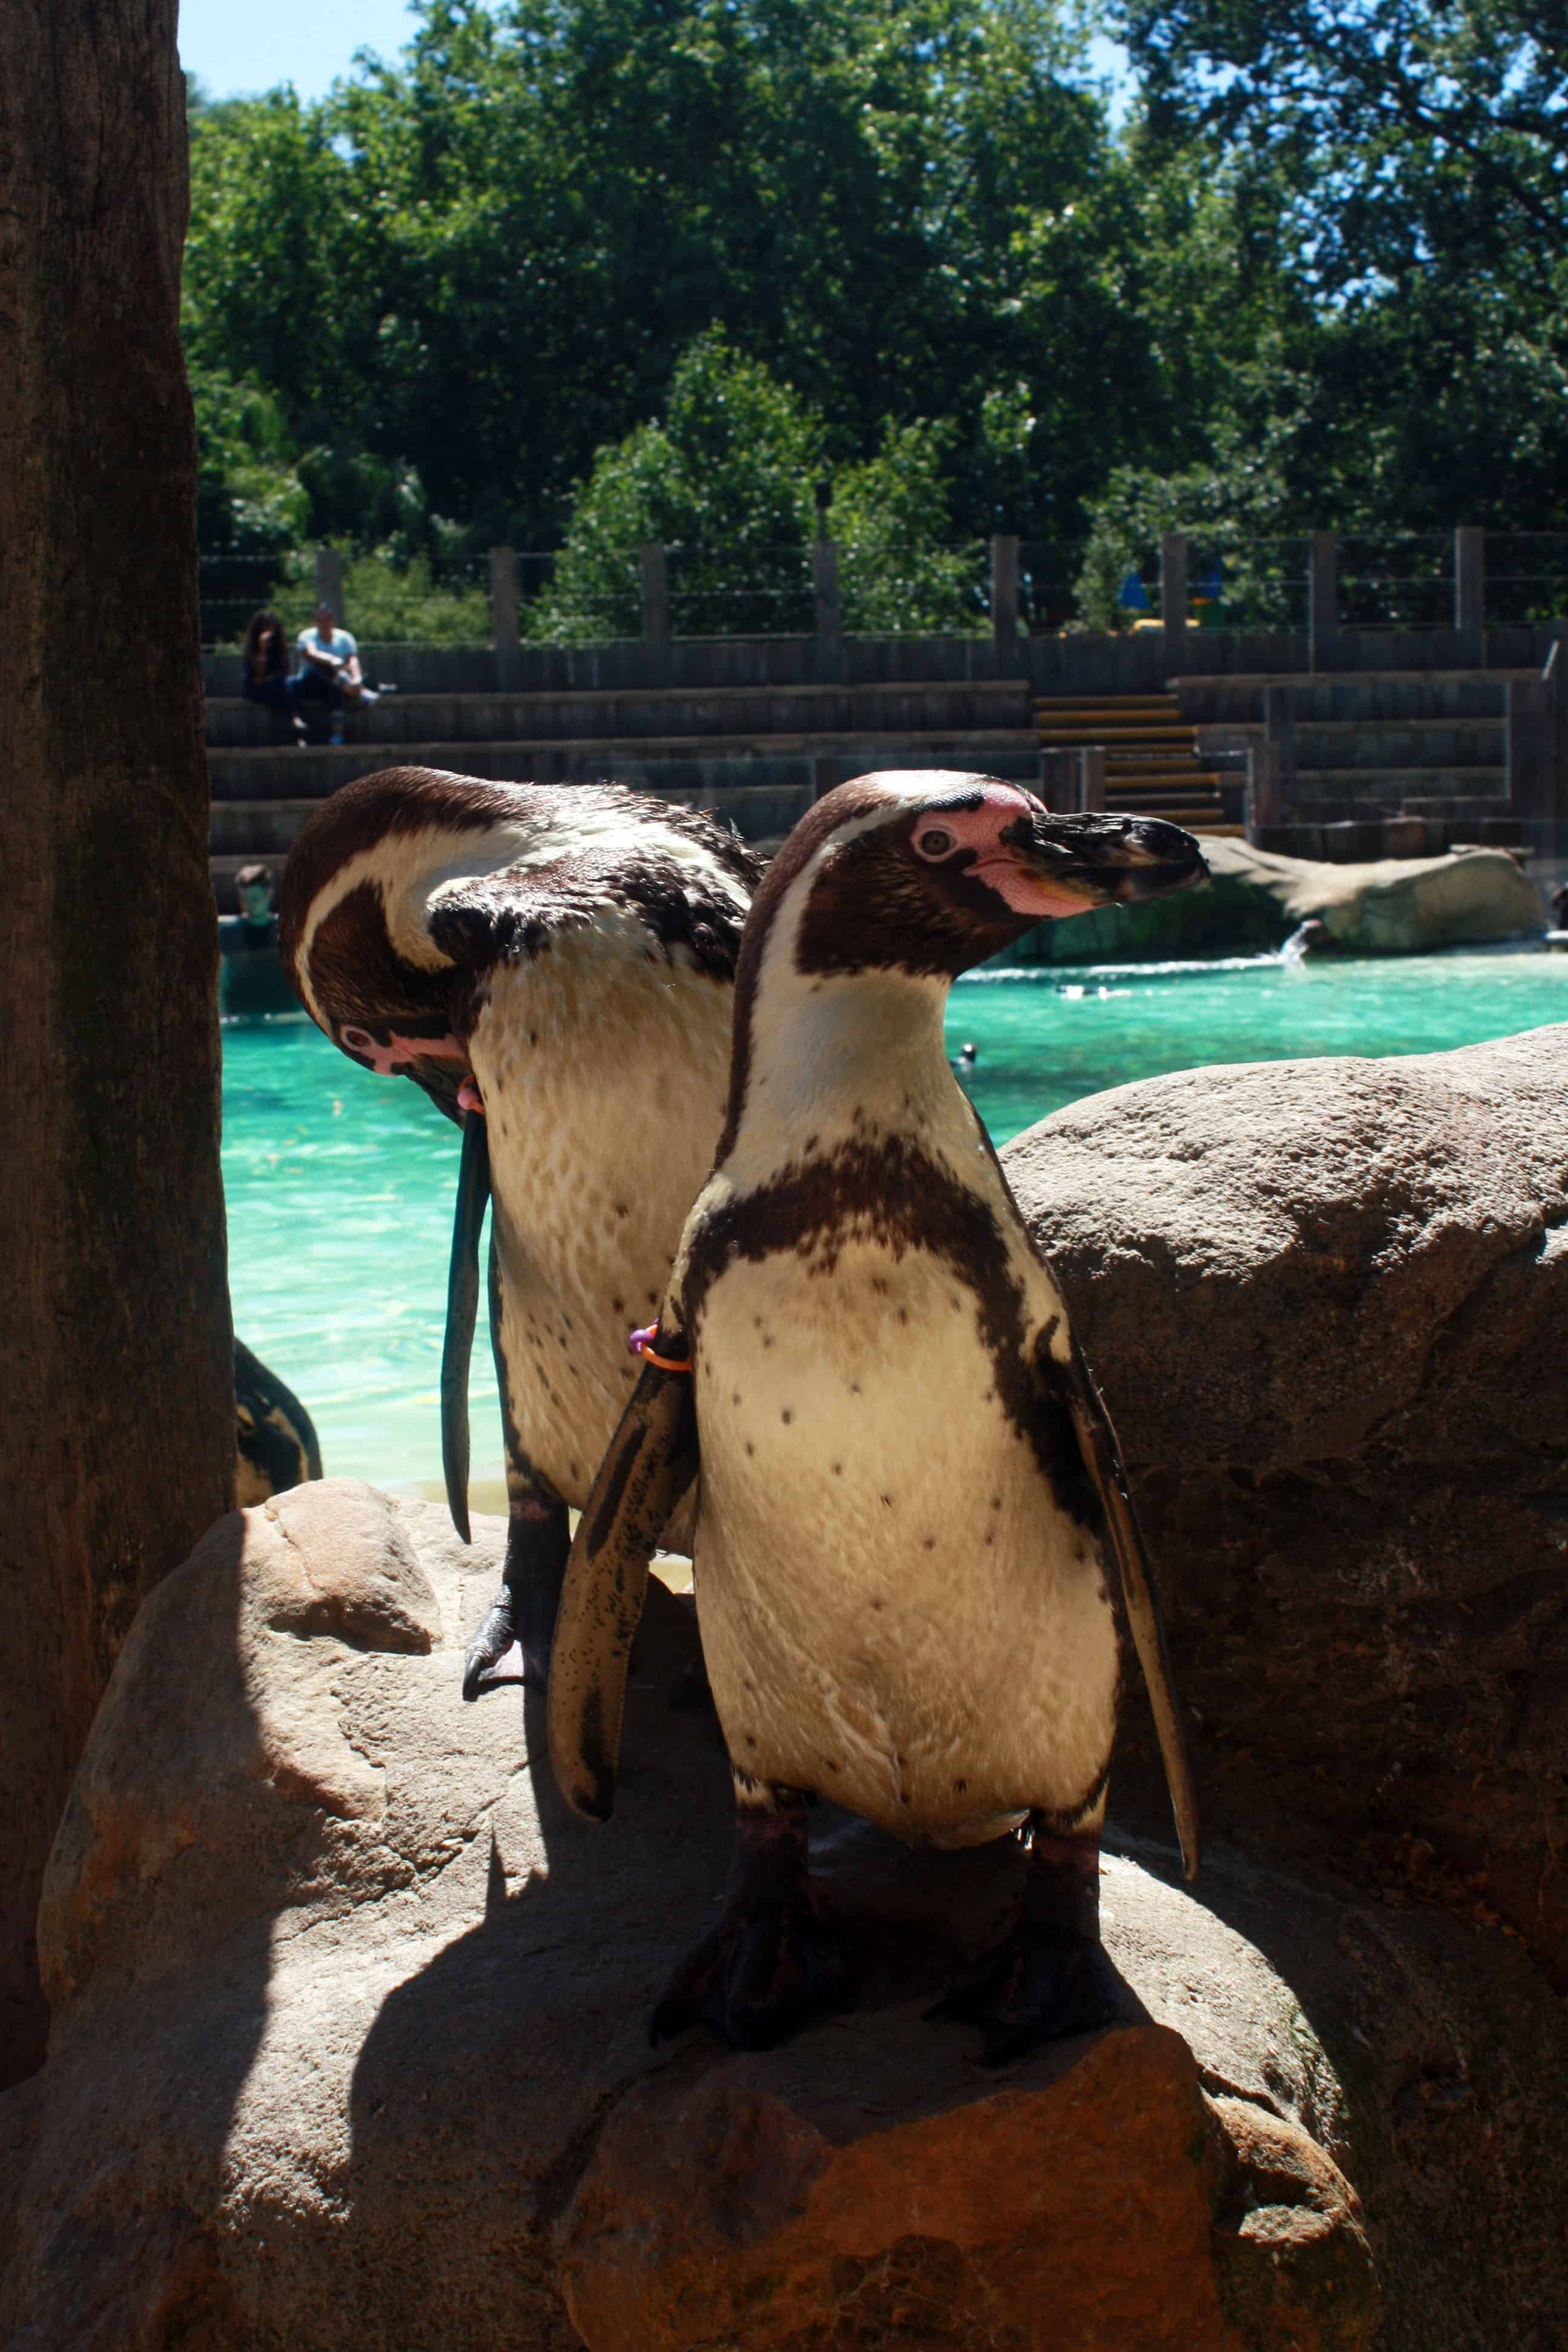 Humboldt penguin, Meet the Penguins at ZSL London Zoo